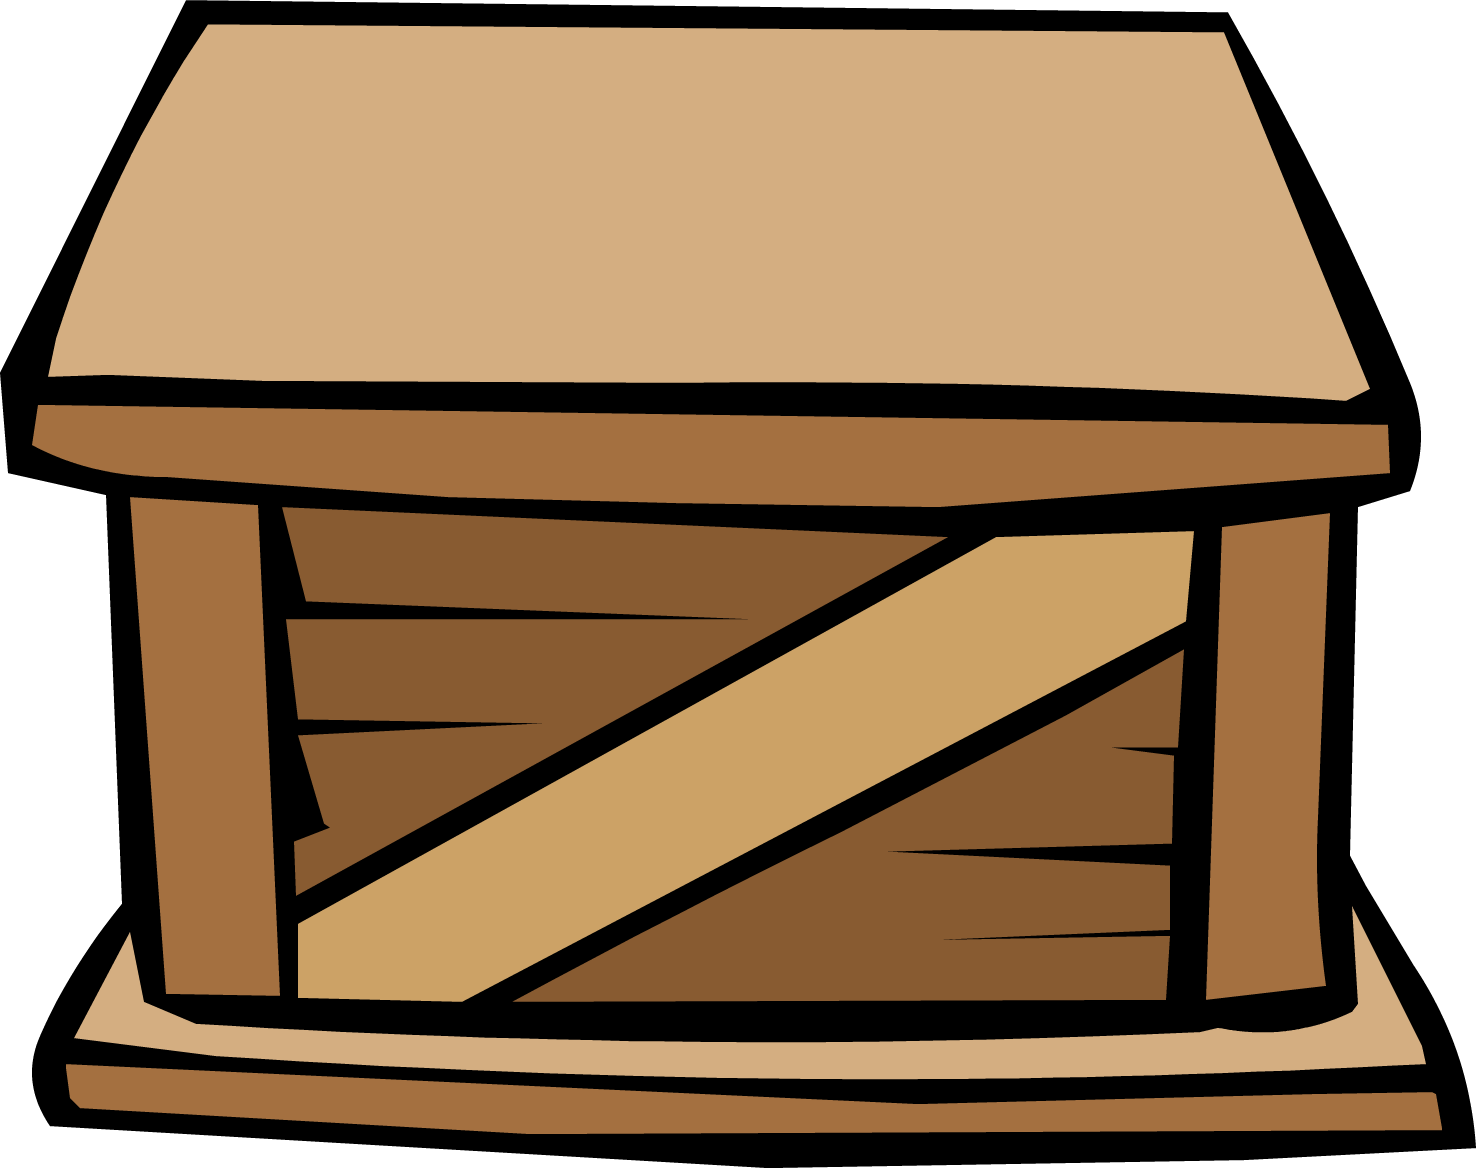 Clipart box wood box. Wooden crate club penguin